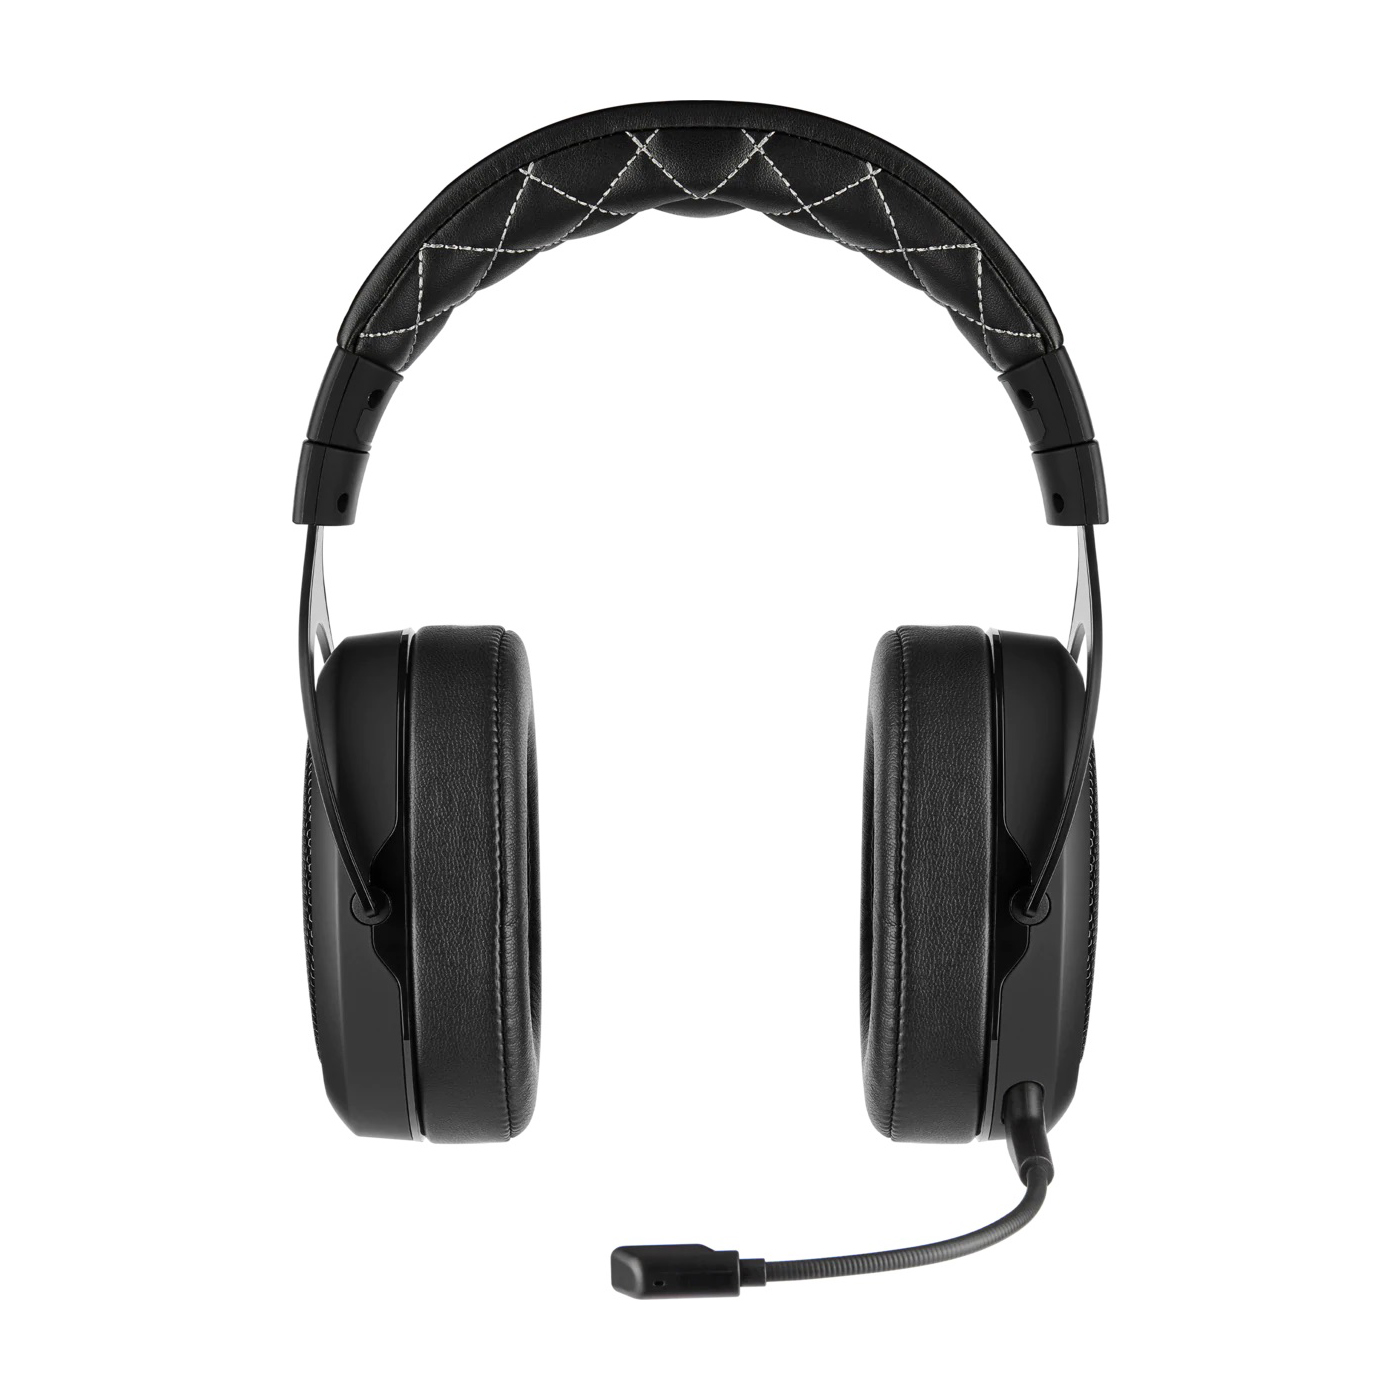 -CA-9011211-NA-Gallery-HS70-PRO-CARBON-15